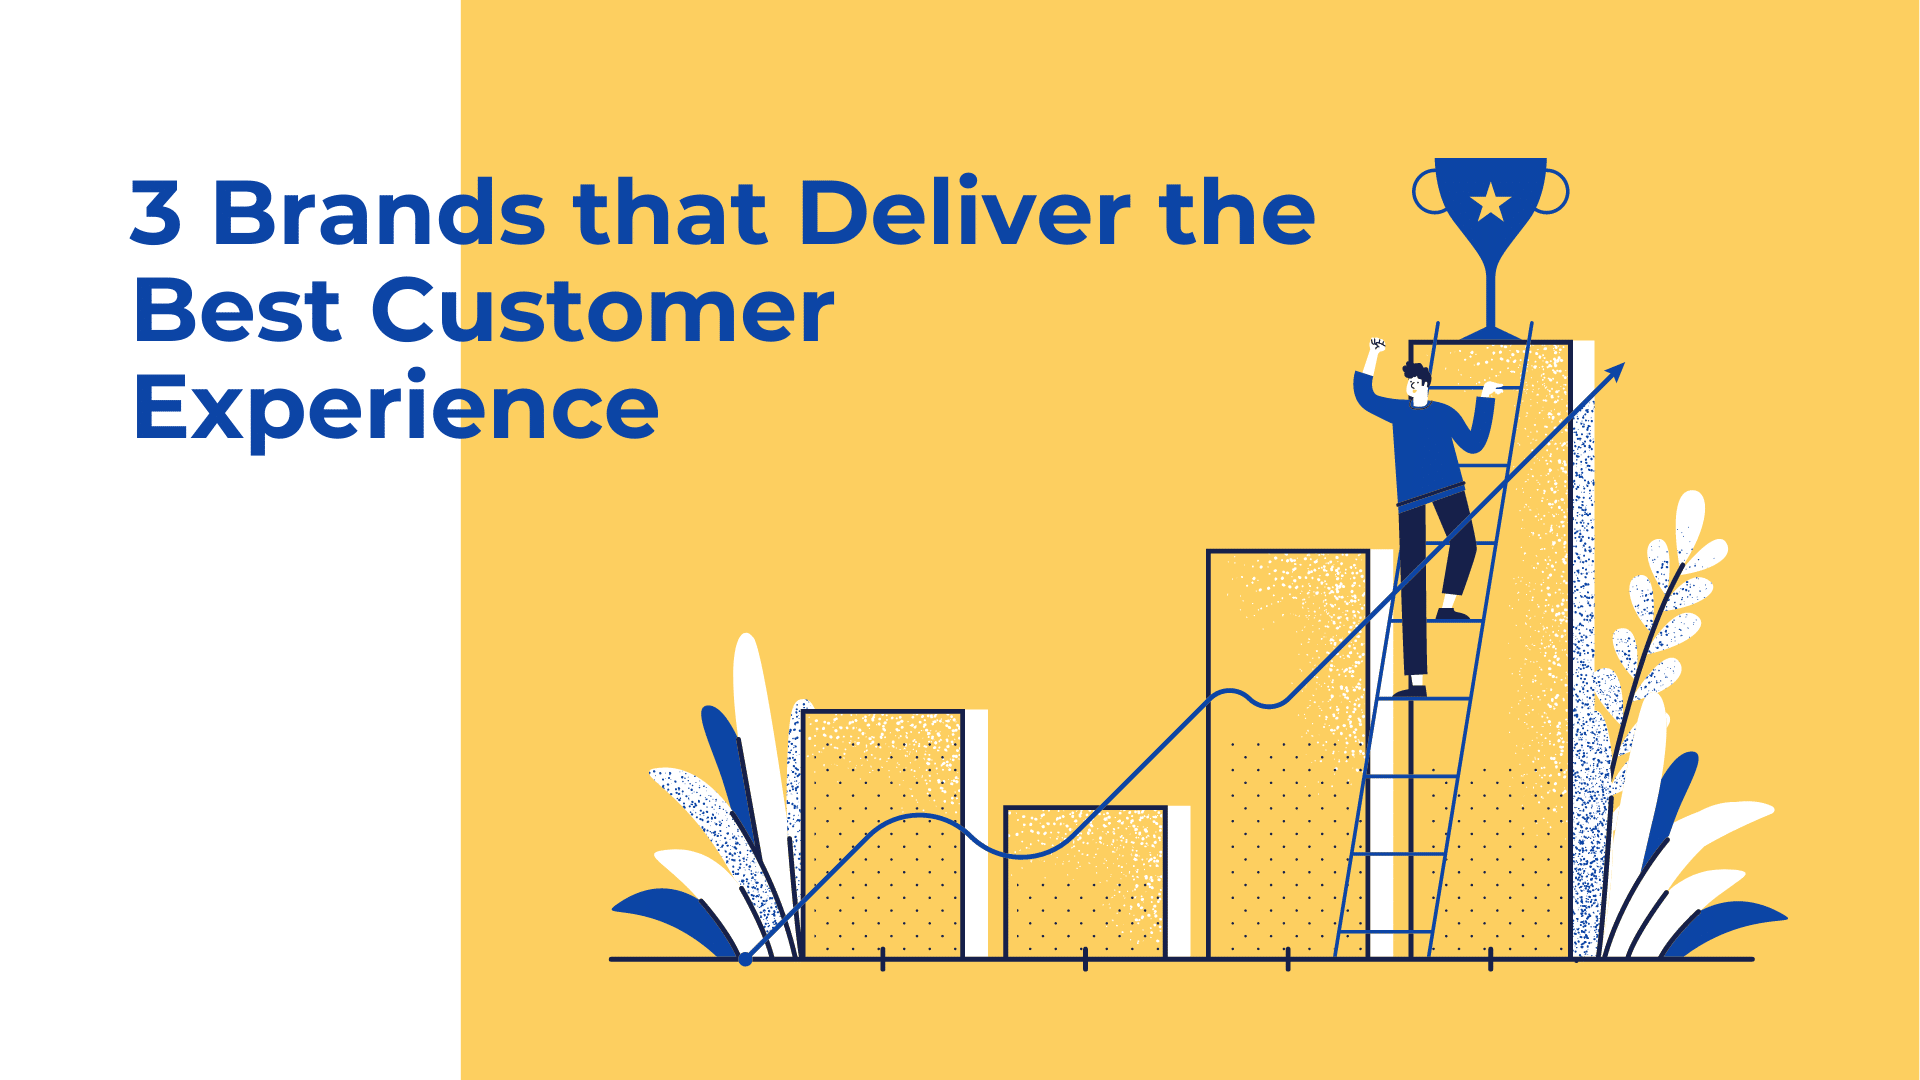 3 Brands that Deliver the Best Customer Experience